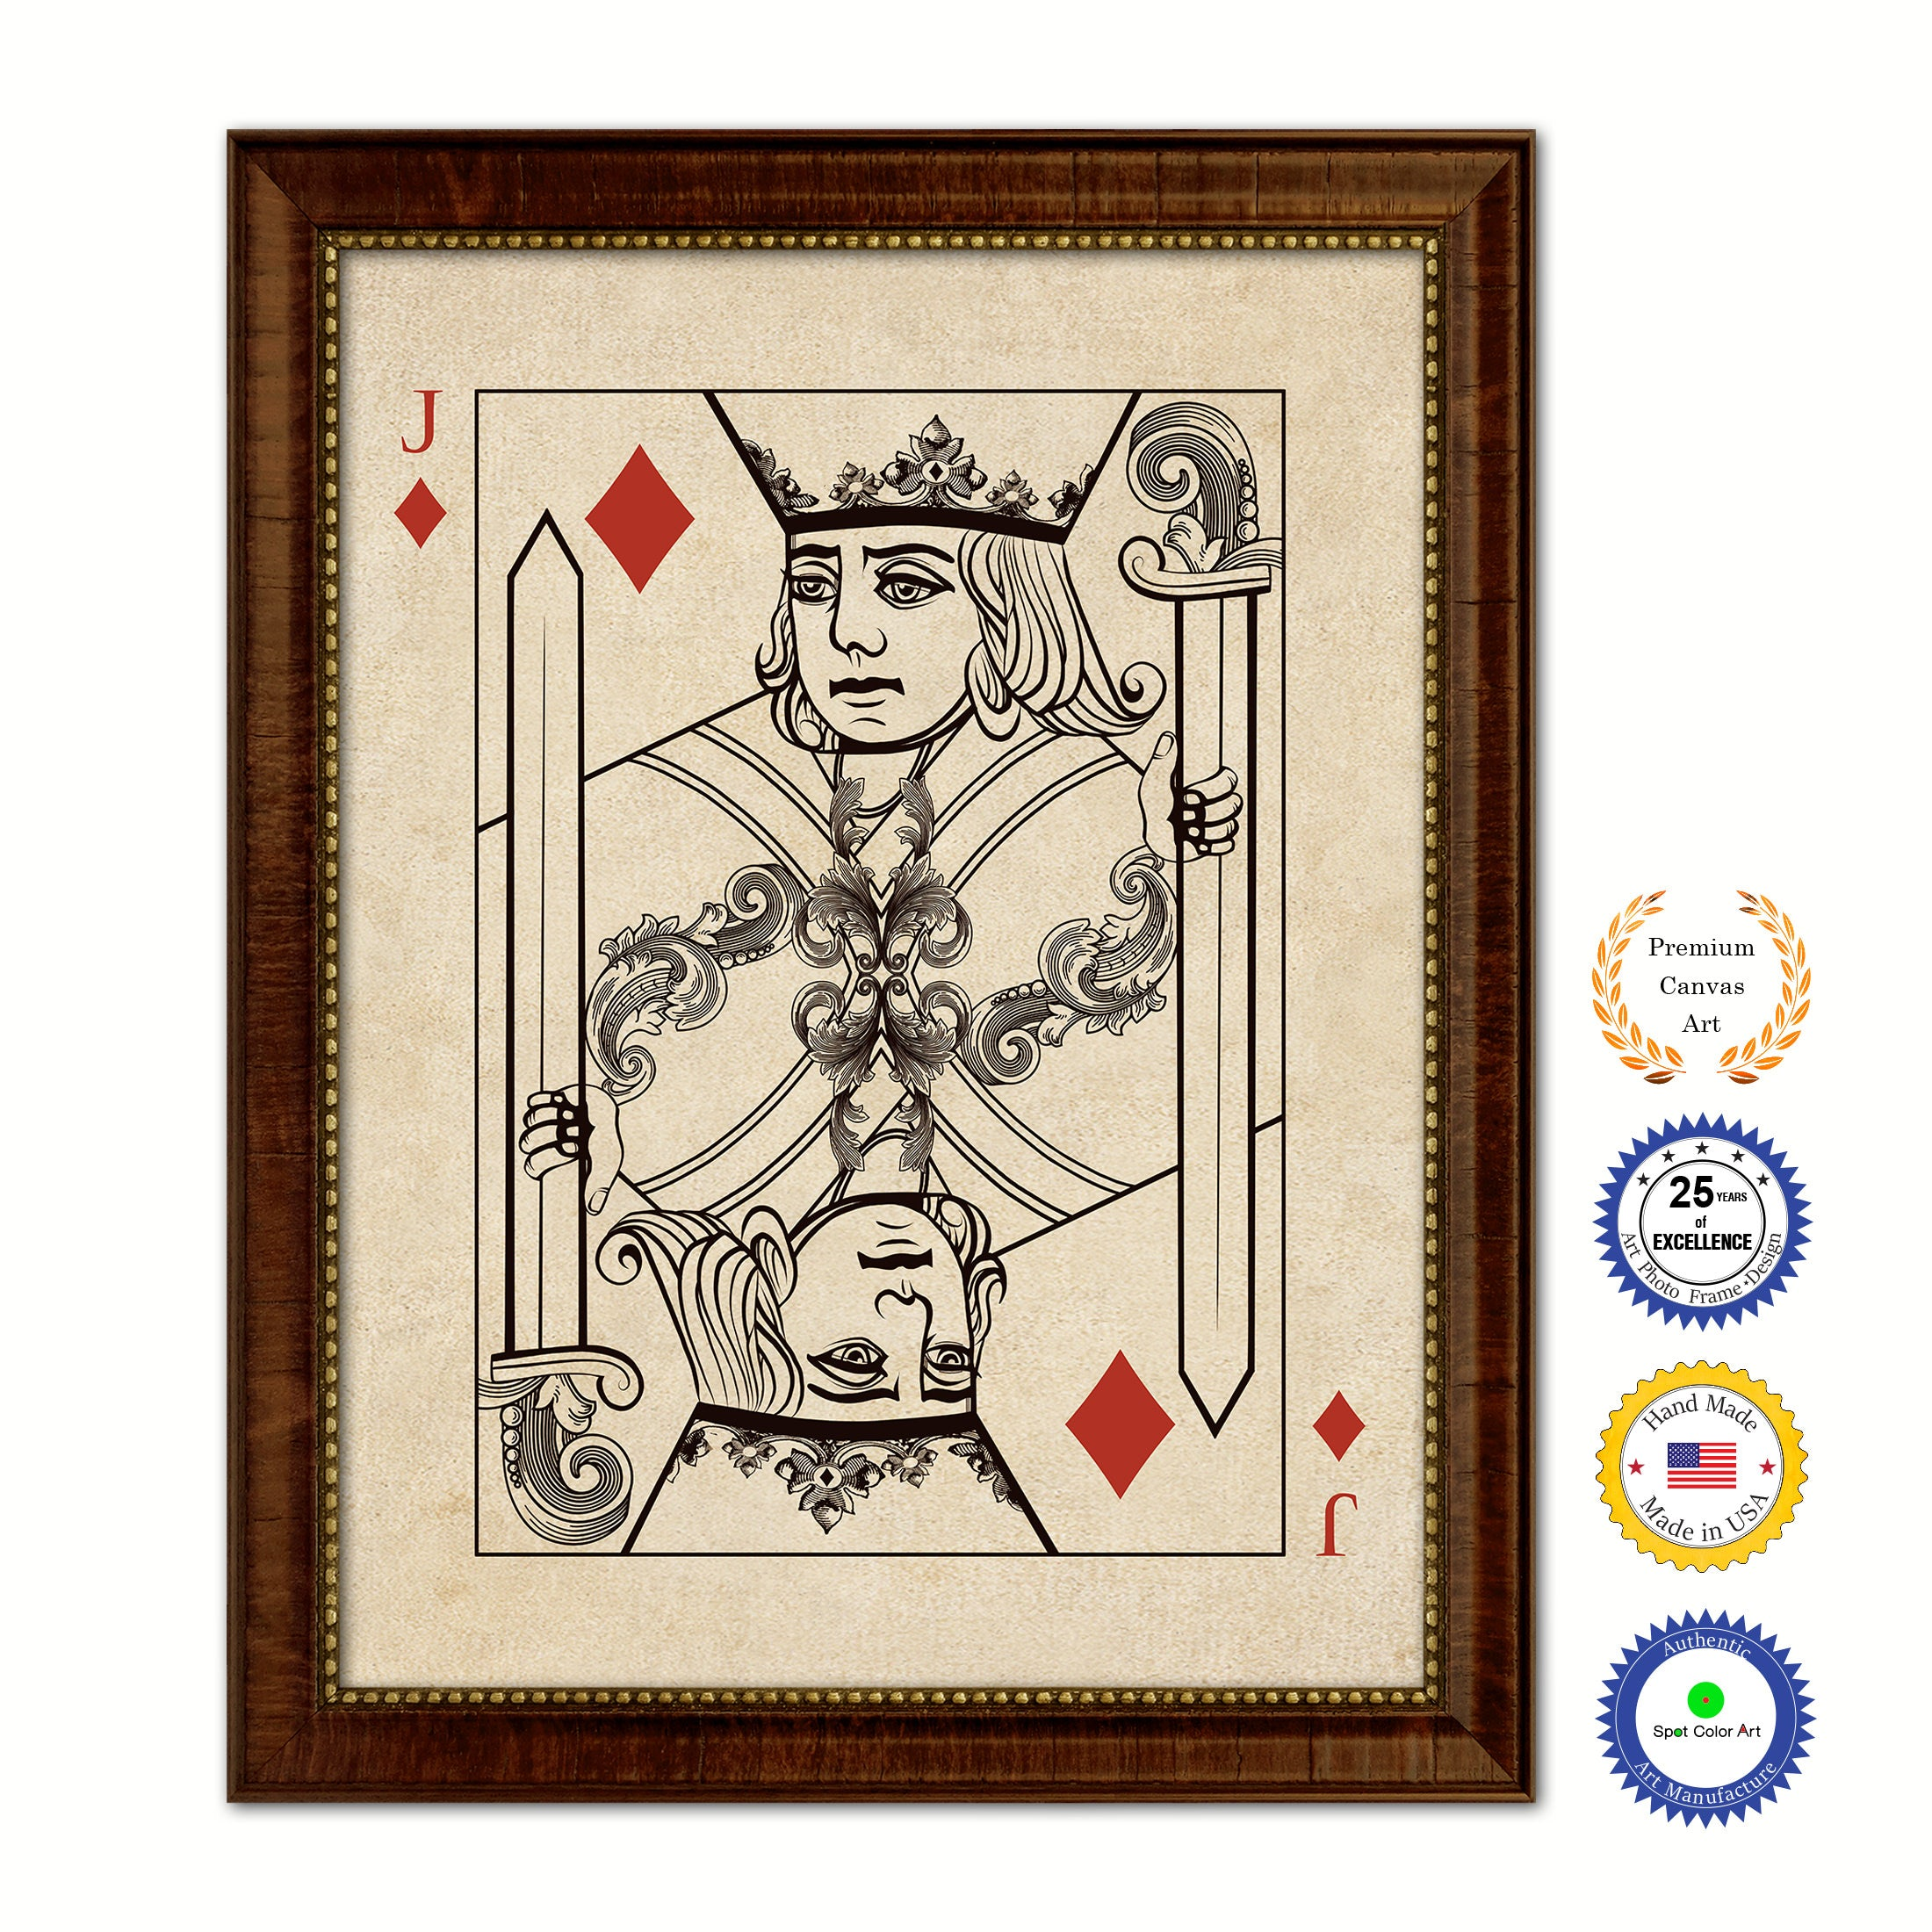 Jack Diamond Poker Decks of Vintage Cards Print on Canvas Brown Custom Framed